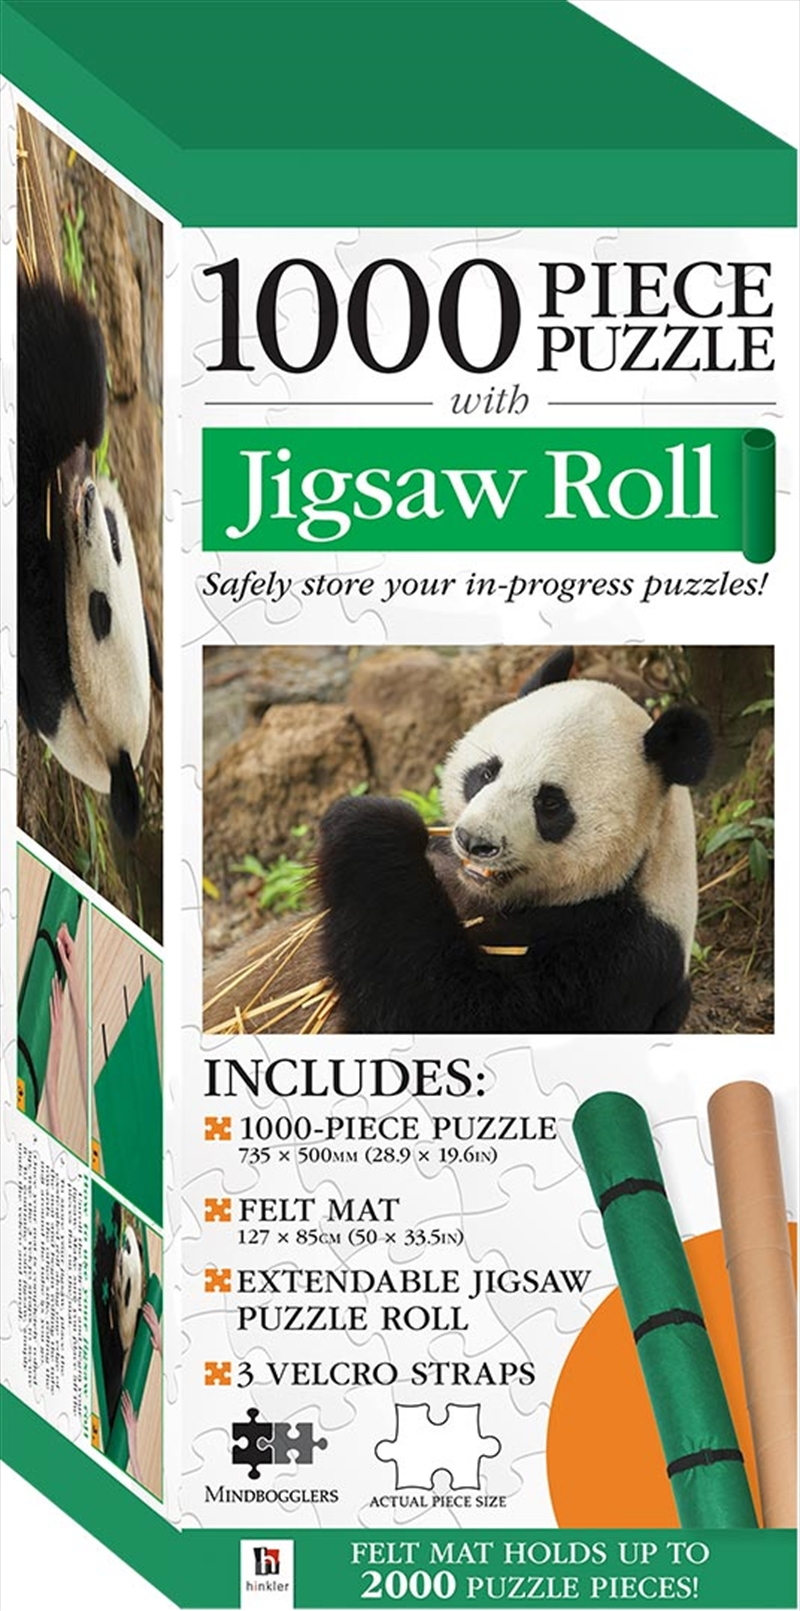 Jigsaw Roll with 1000-Piece Puzzle: Panda | Merchandise